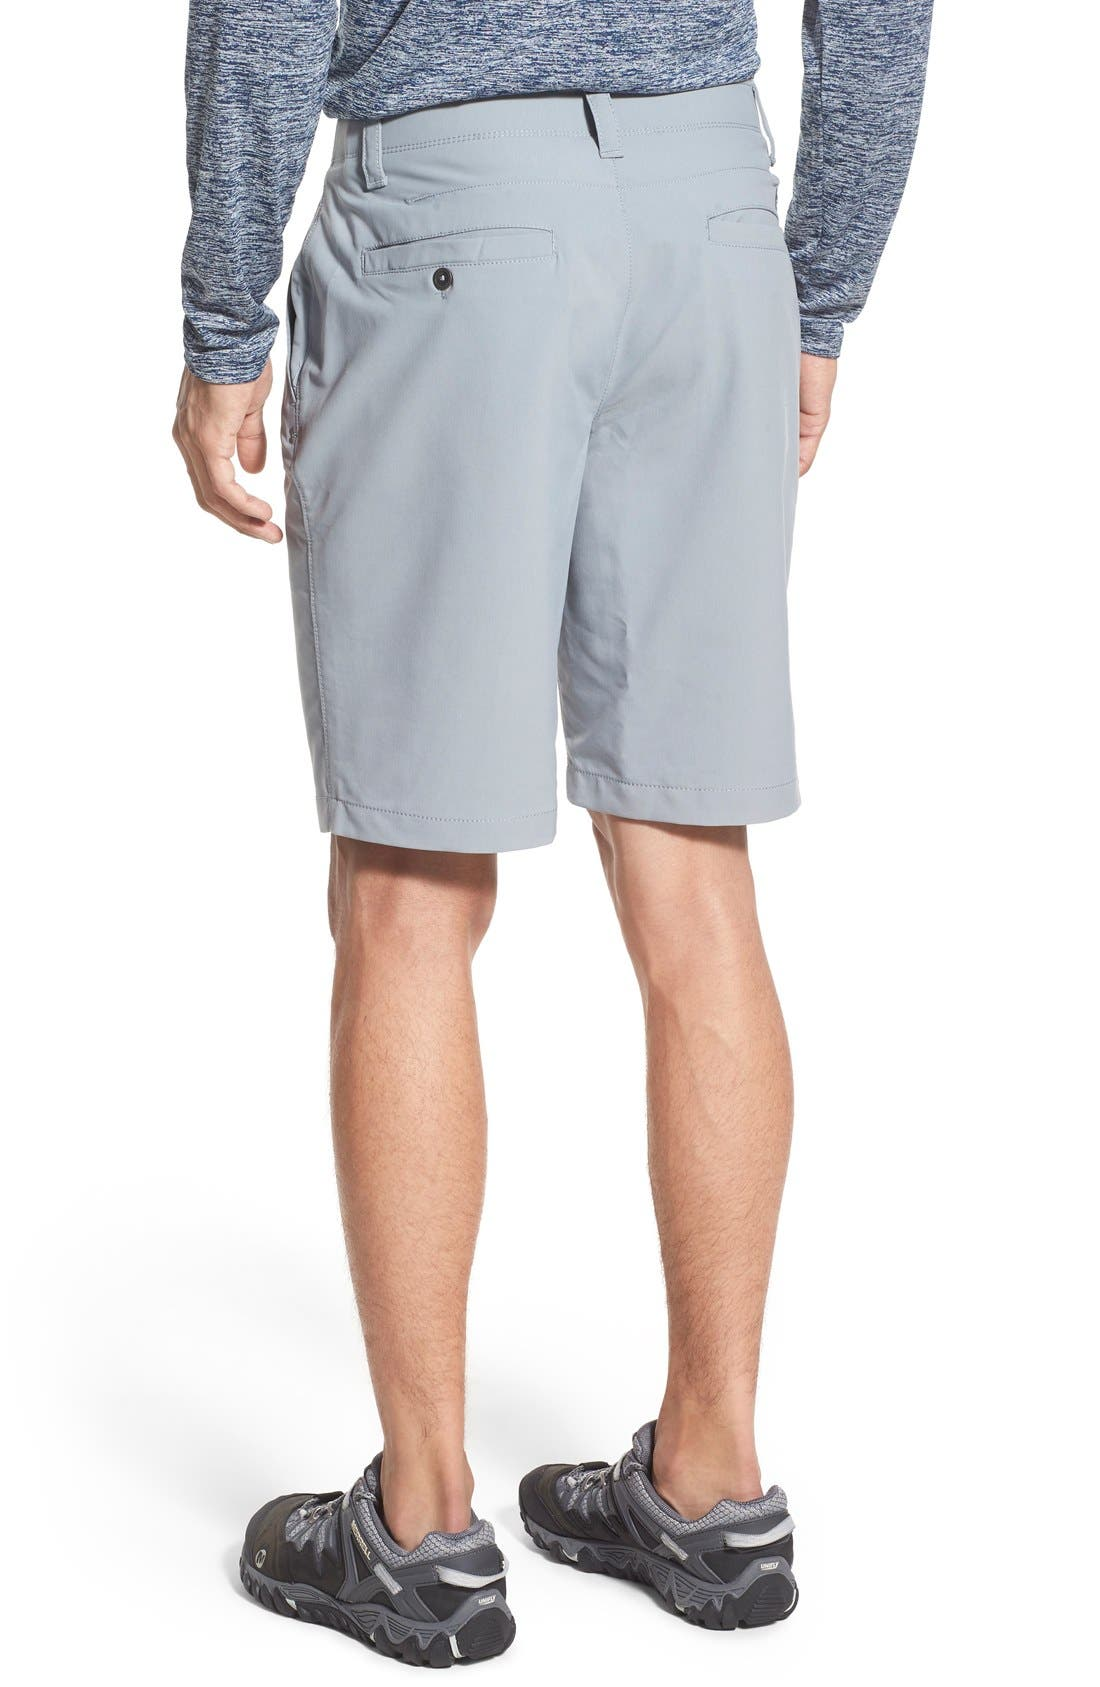 'Matchplay' Moisture Wicking Golf Shorts,                             Alternate thumbnail 2, color,                             Steel